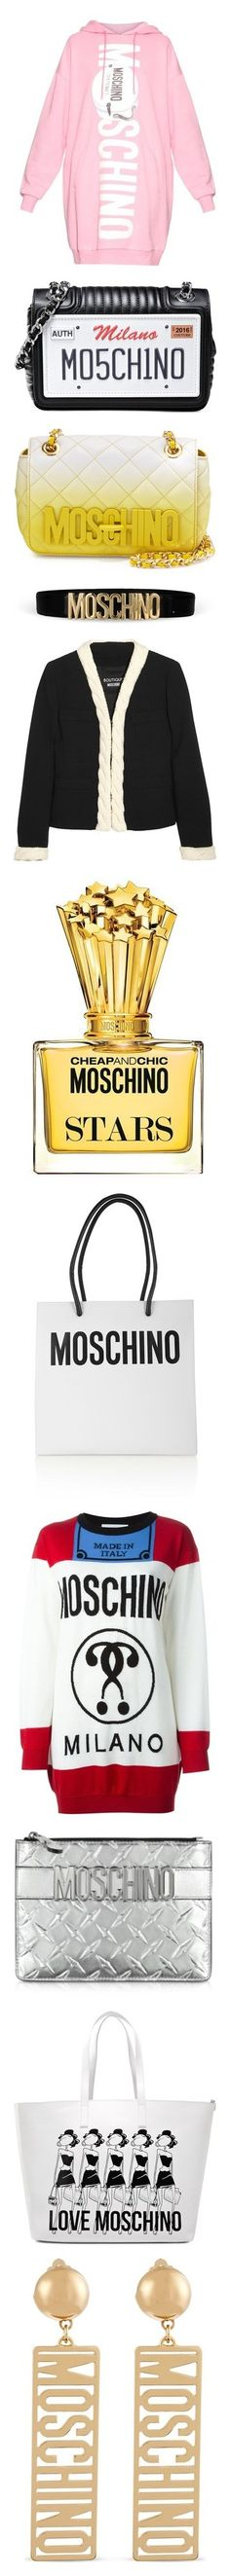 """""""Moschino"""" by nattiexo ❤ liked on Polyvore featuring dresses, tops, pink, pink dress, light pink dresses, moschino, cotton dresses, oversized sweater dress, bags and handbags"""